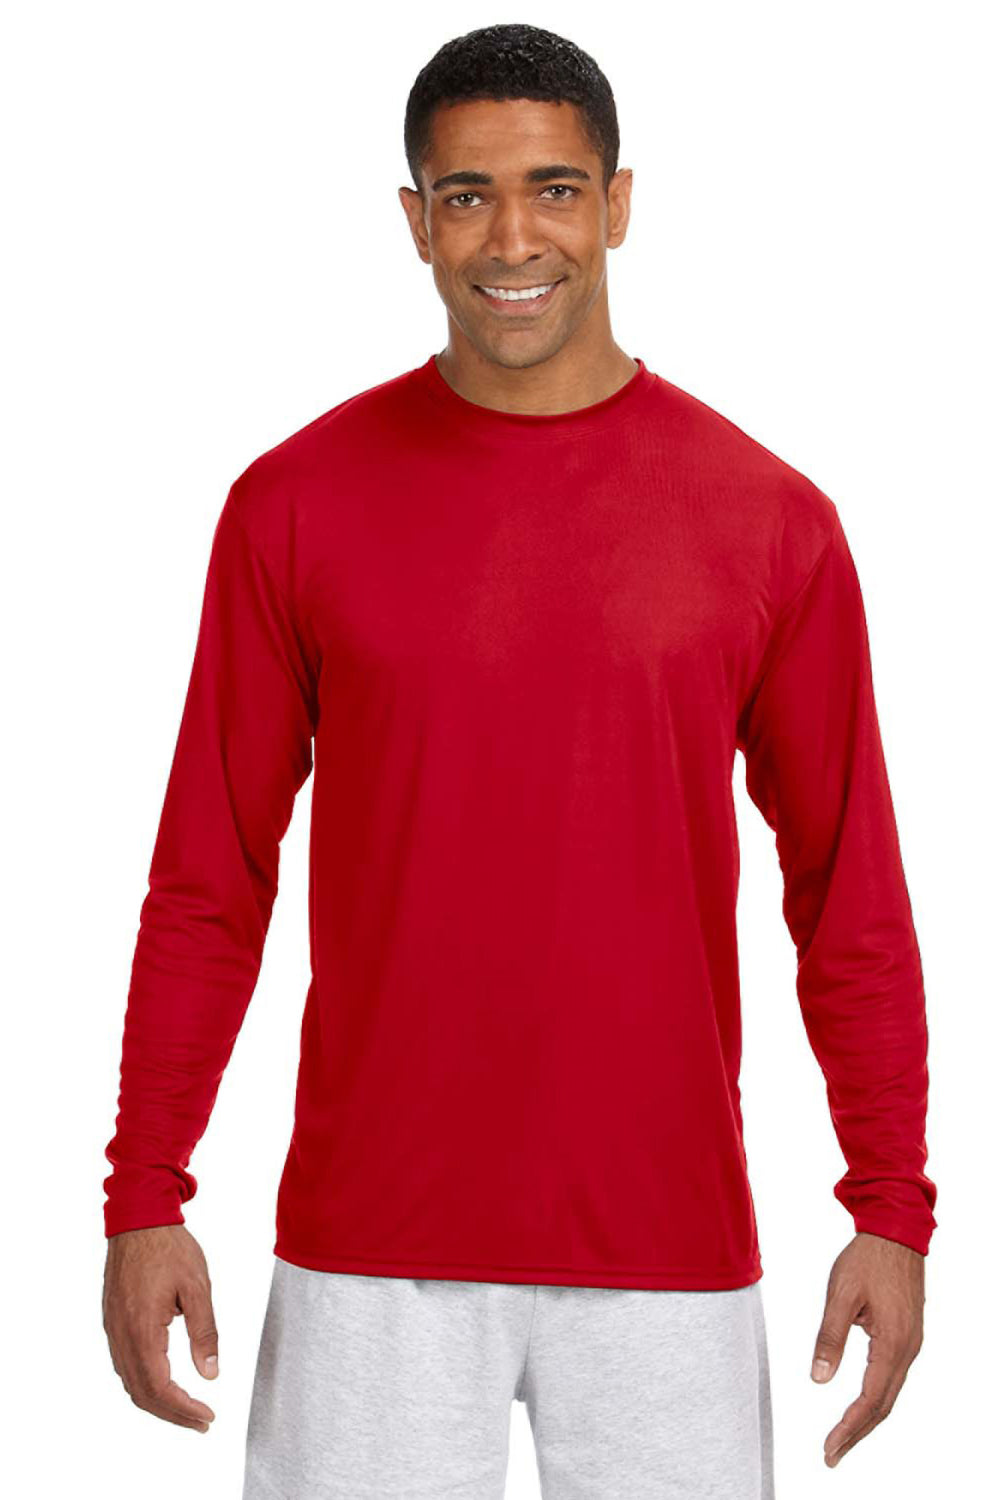 A4 N3165 Mens Cooling Performance Moisture Wicking Long Sleeve Crewneck T-Shirt Red Front